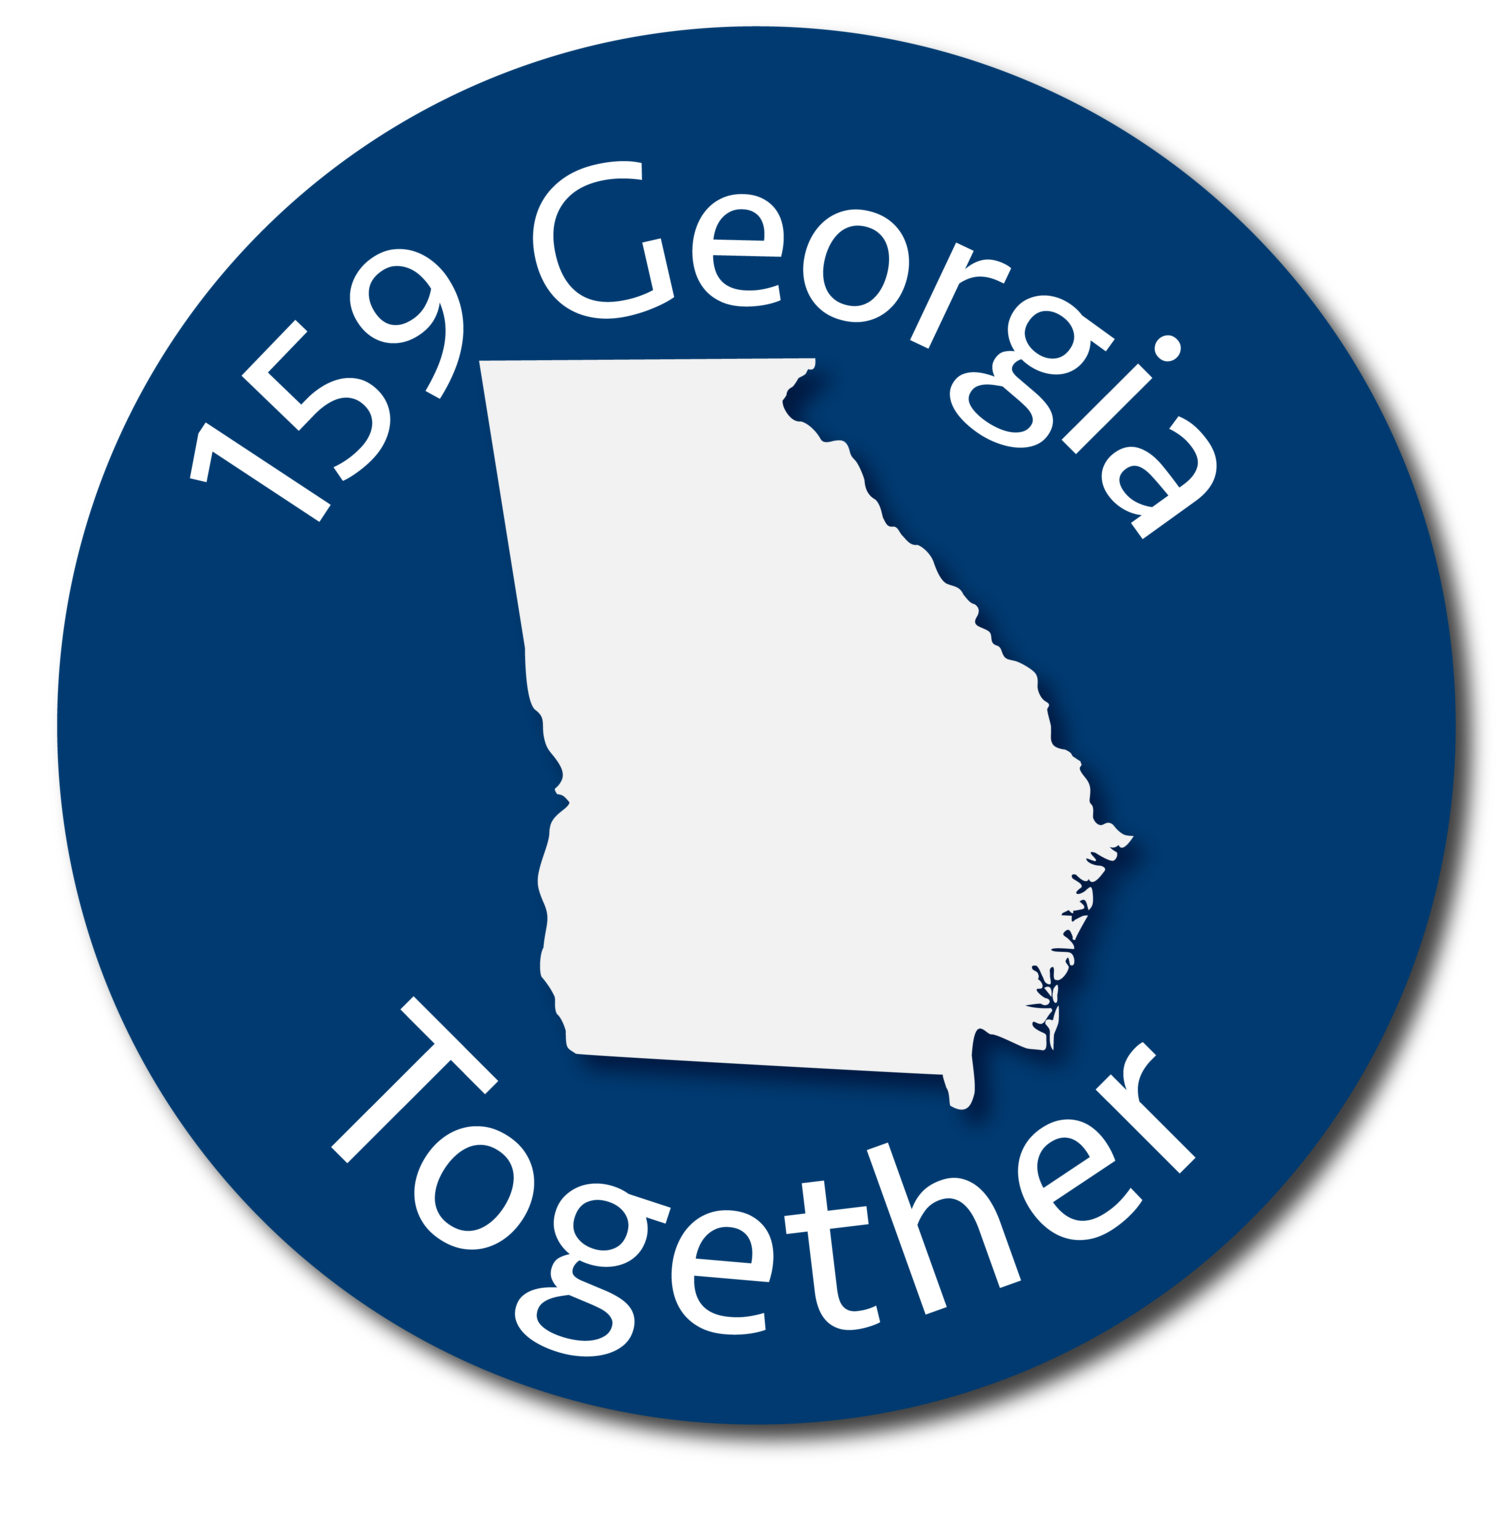 159 Georgia Together